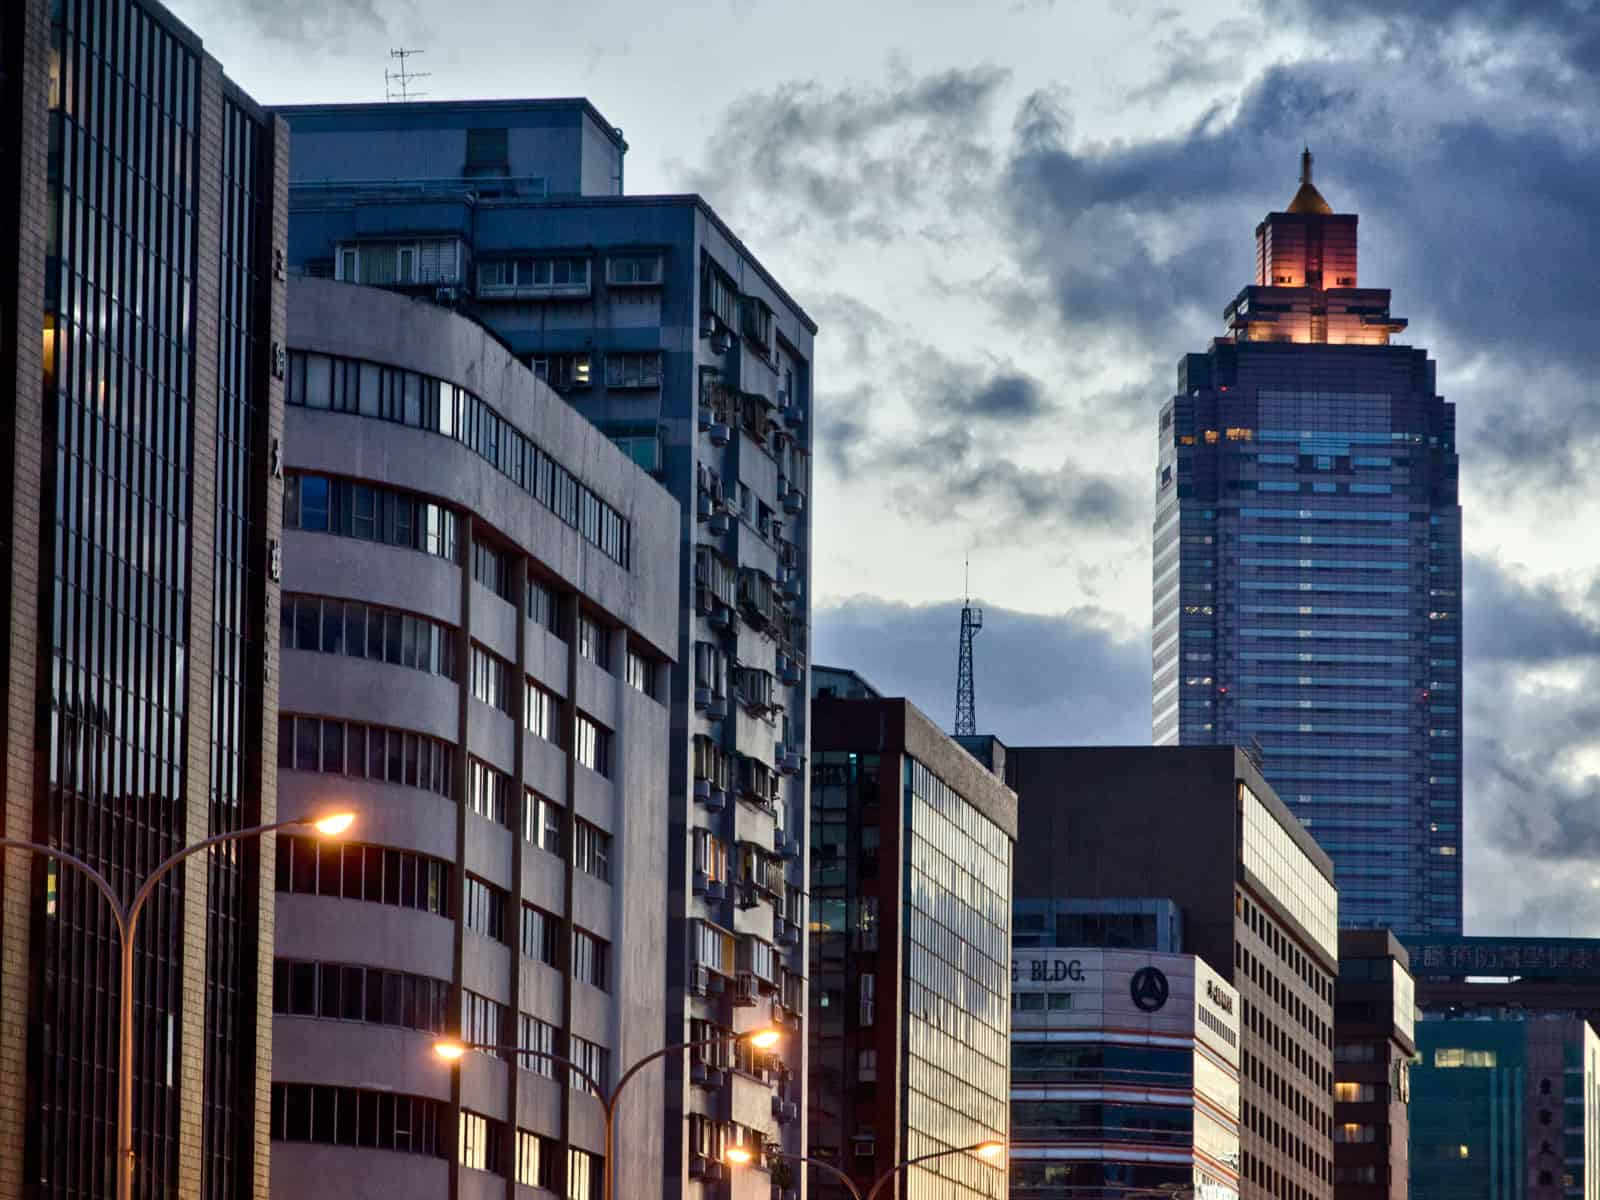 Buildings in Evening, in Taipei, Taiwan